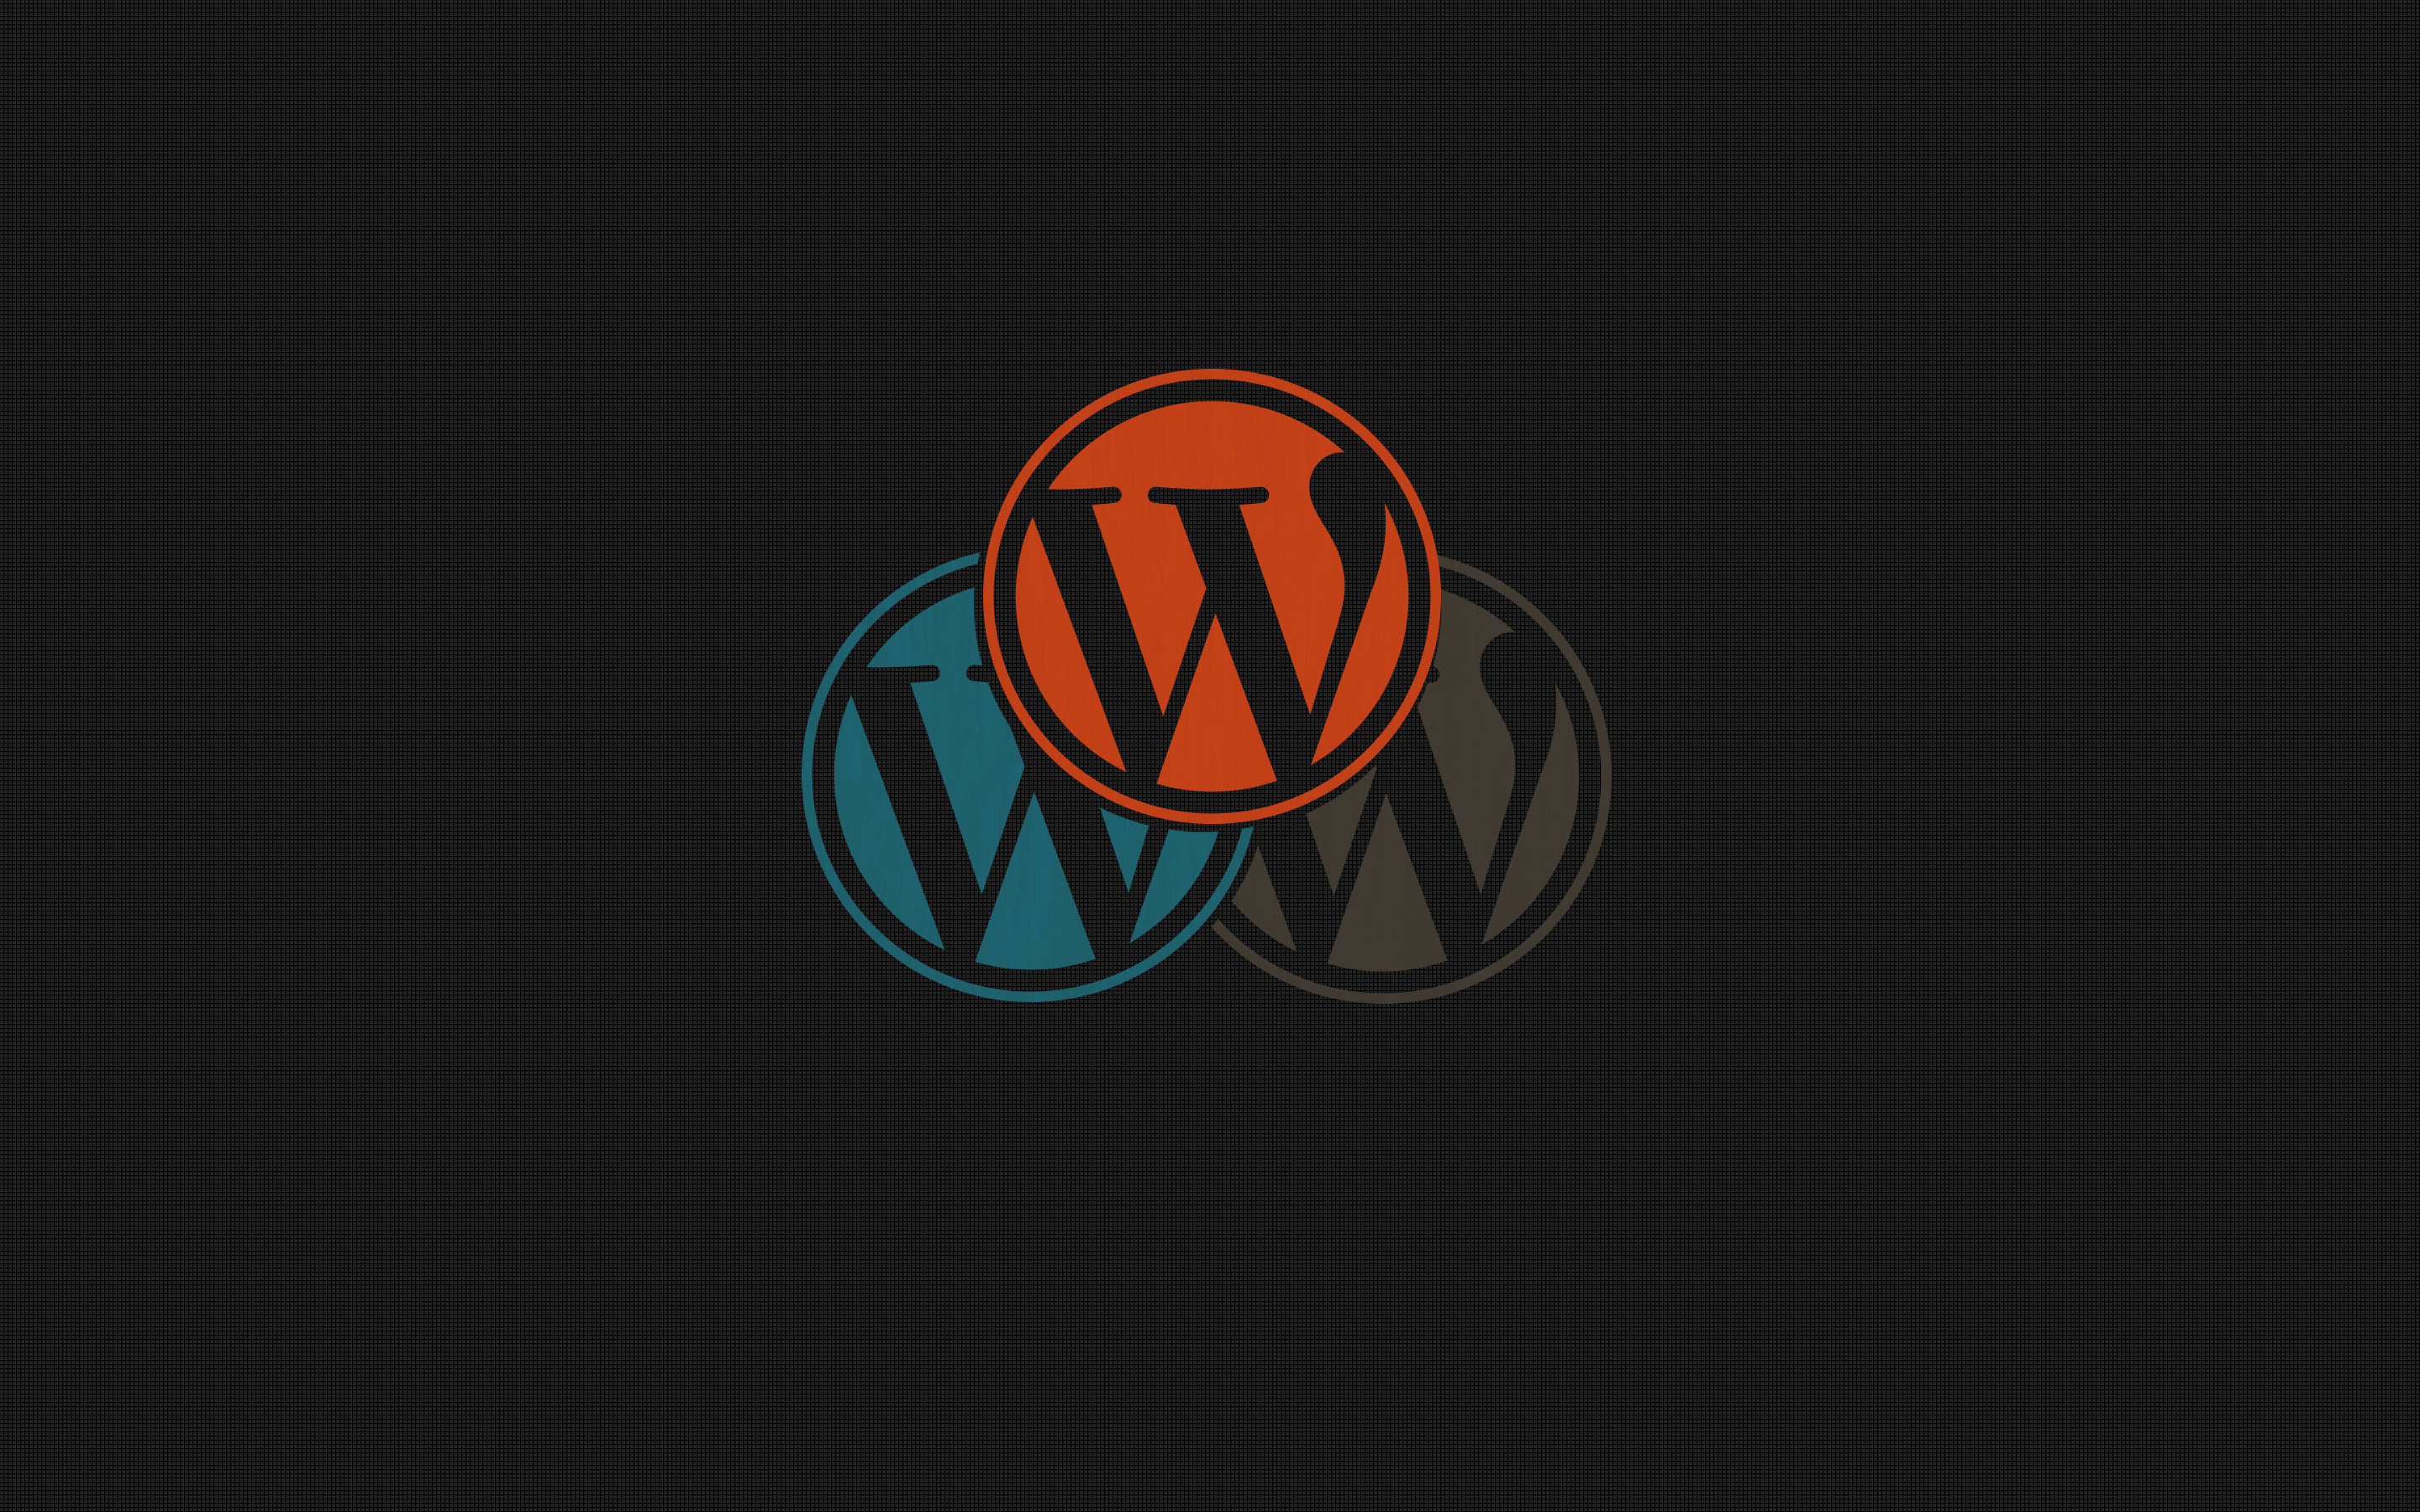 wordpress logos wide wallpaper 62781